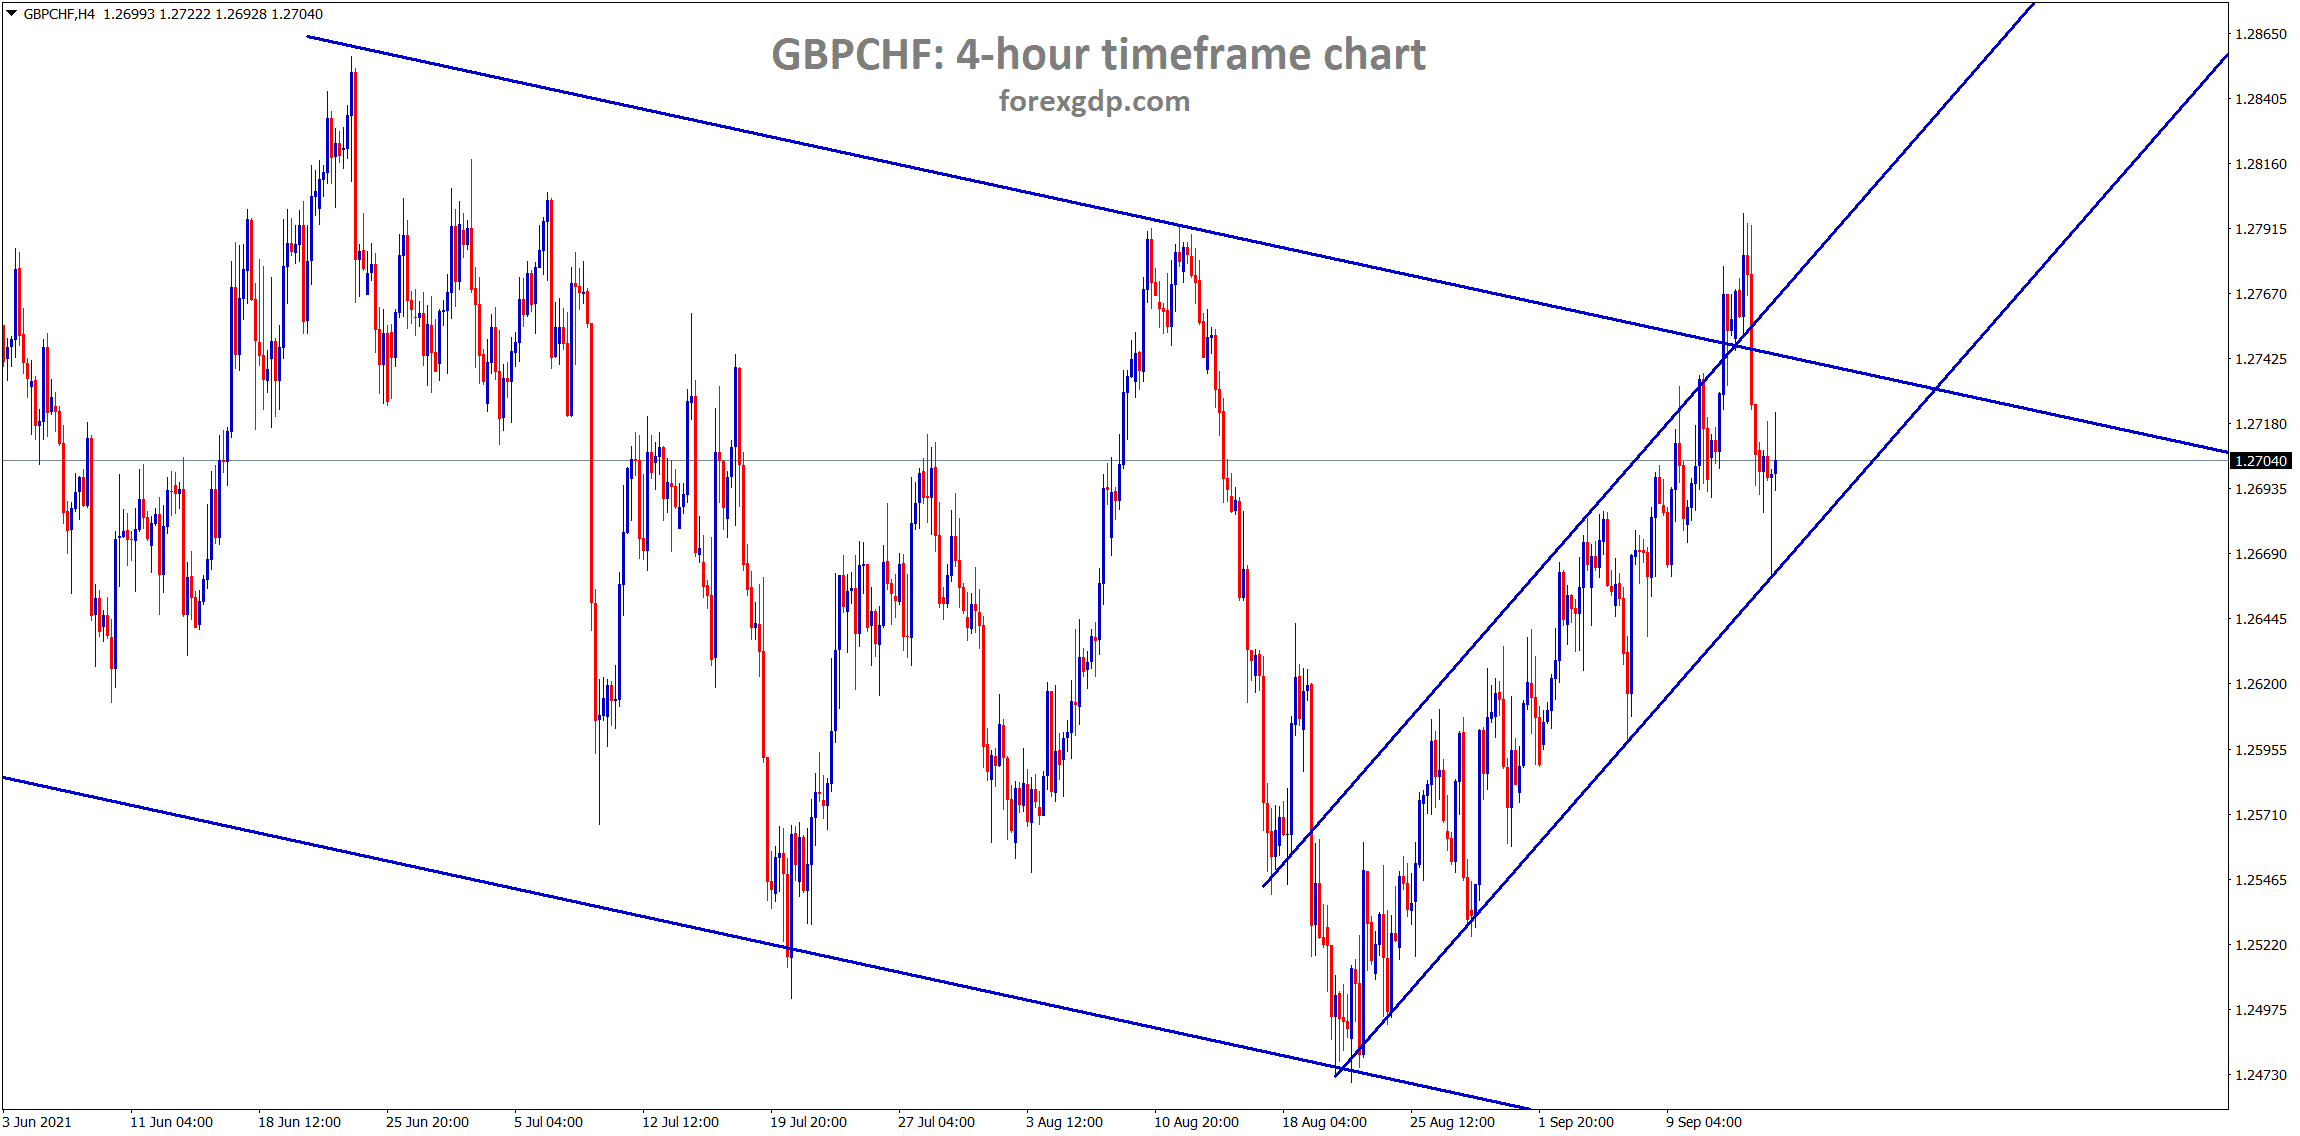 GBPCHF is still moving in an Ascending channel for a long time